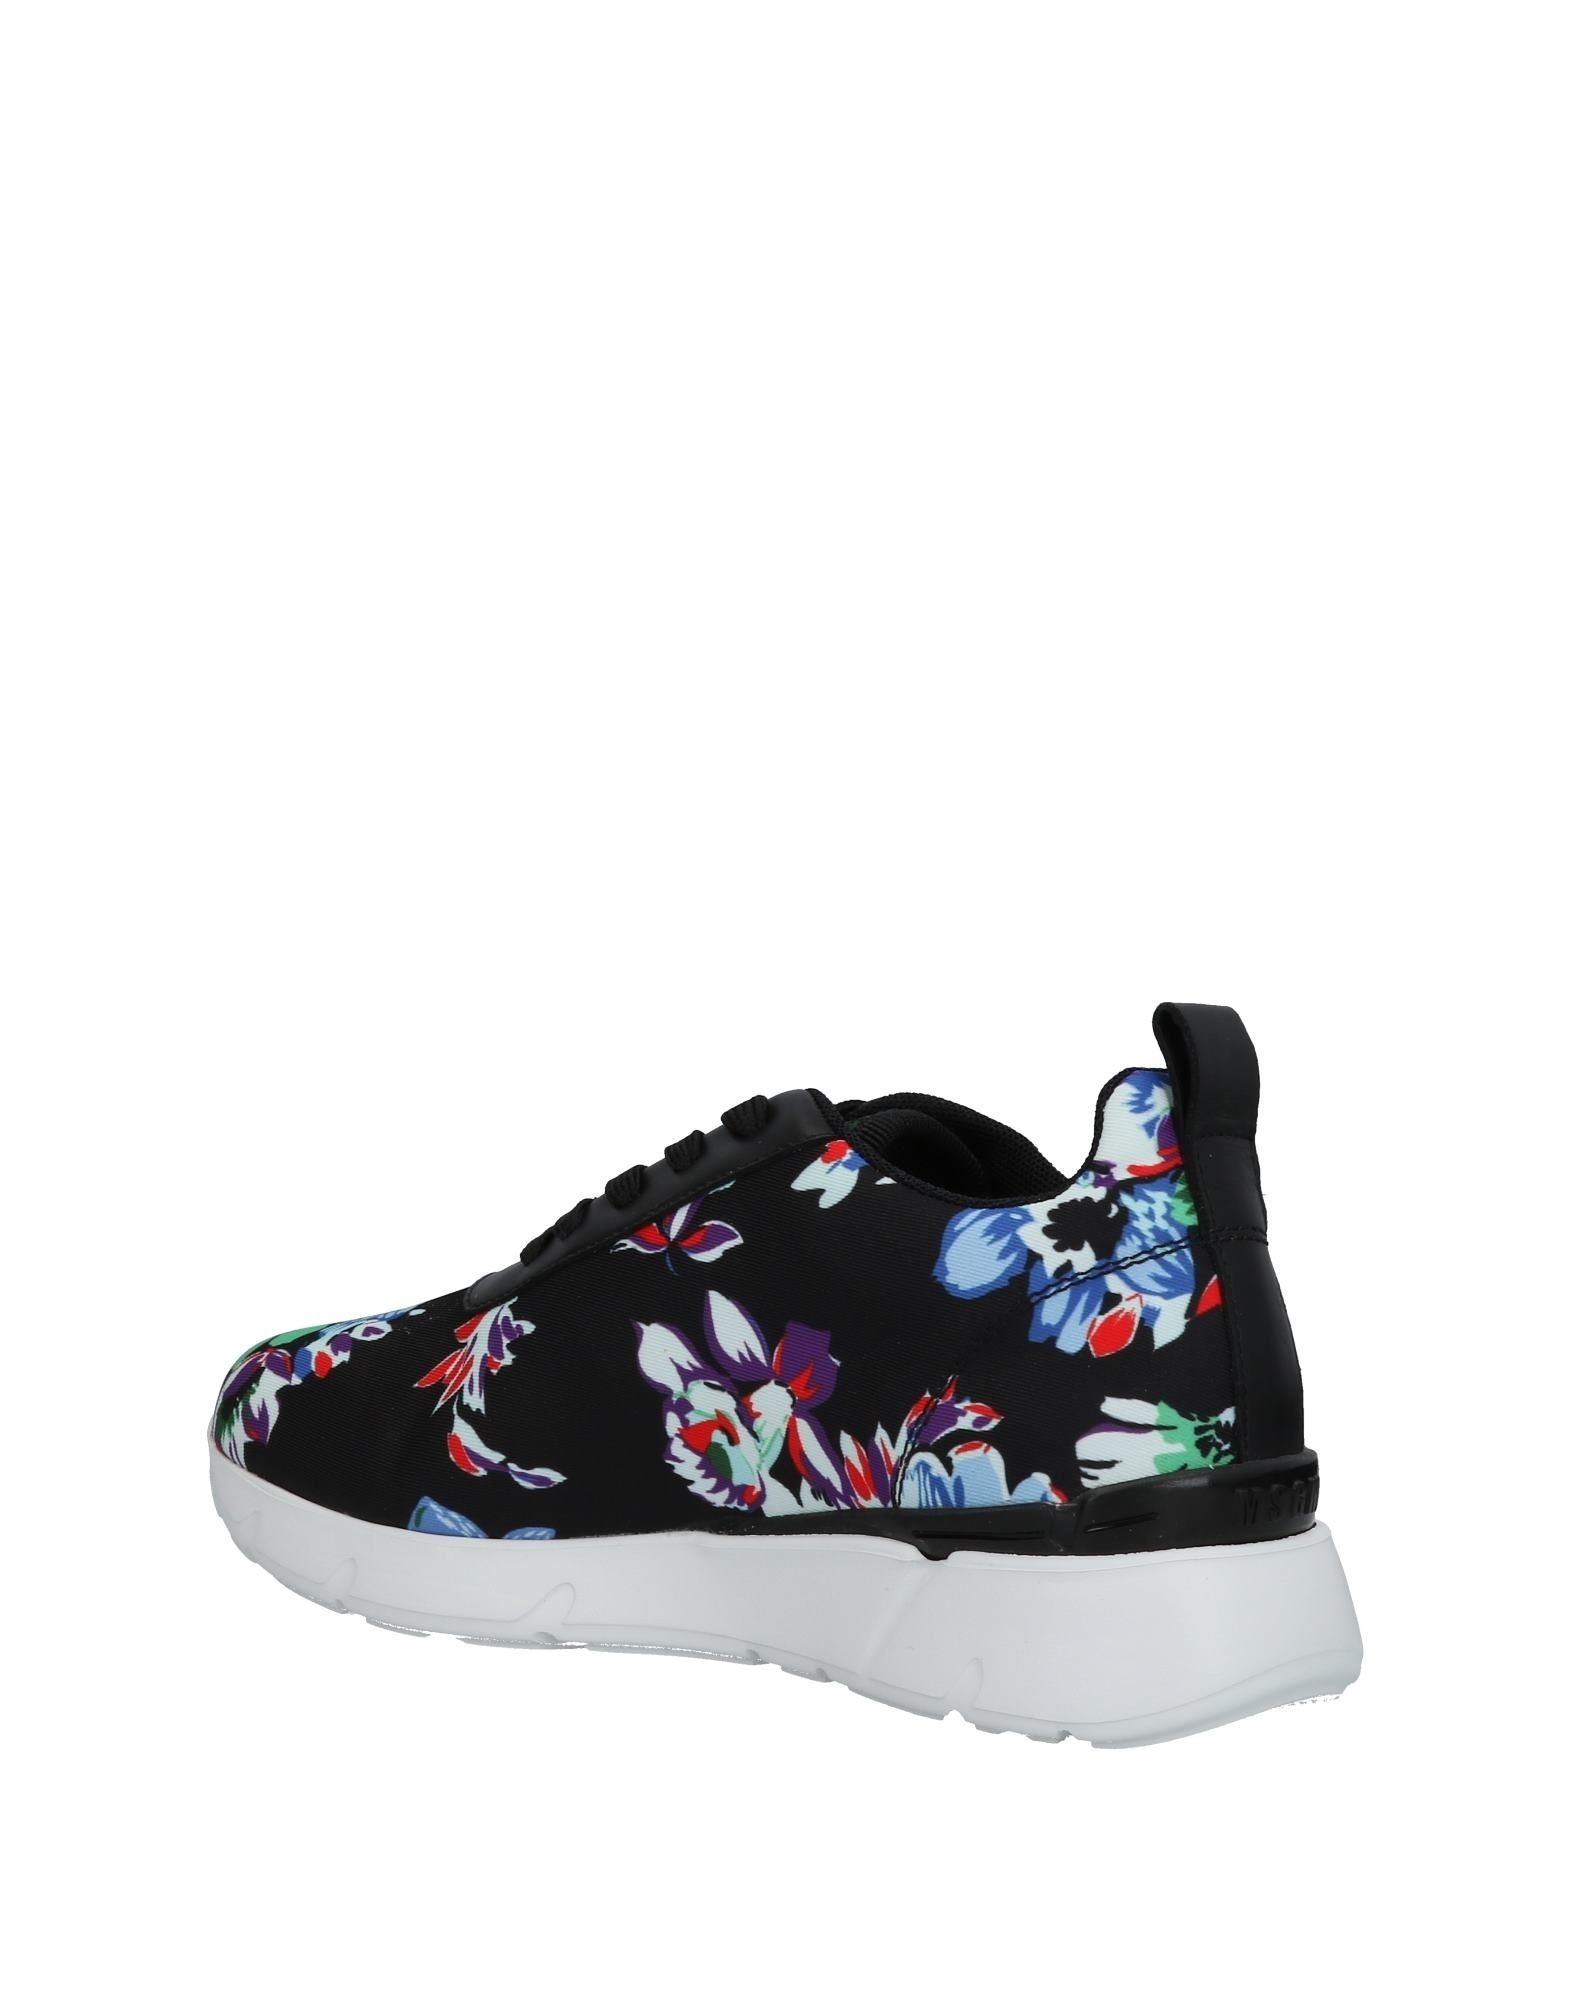 ... Sneakers Msgm Femme - Sneakers Msgm sur ...